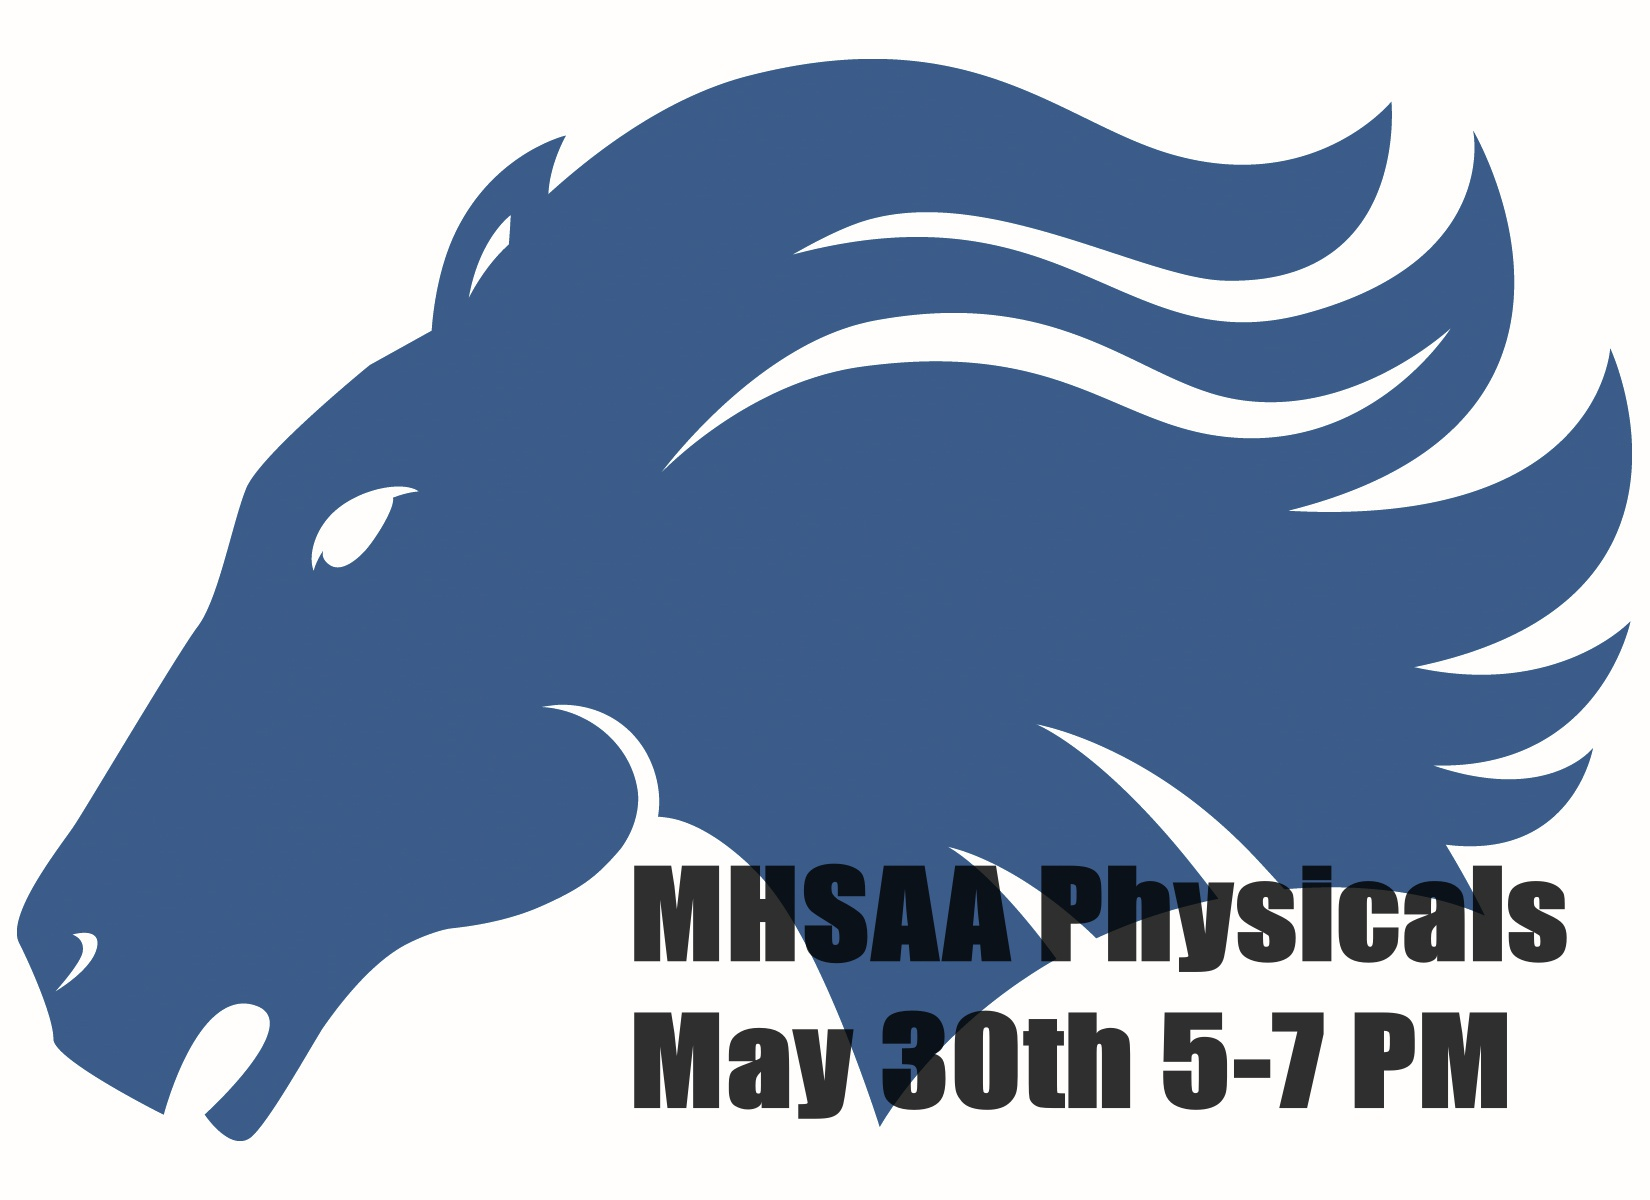 MHSAA Physicals at Marian on May 30th.